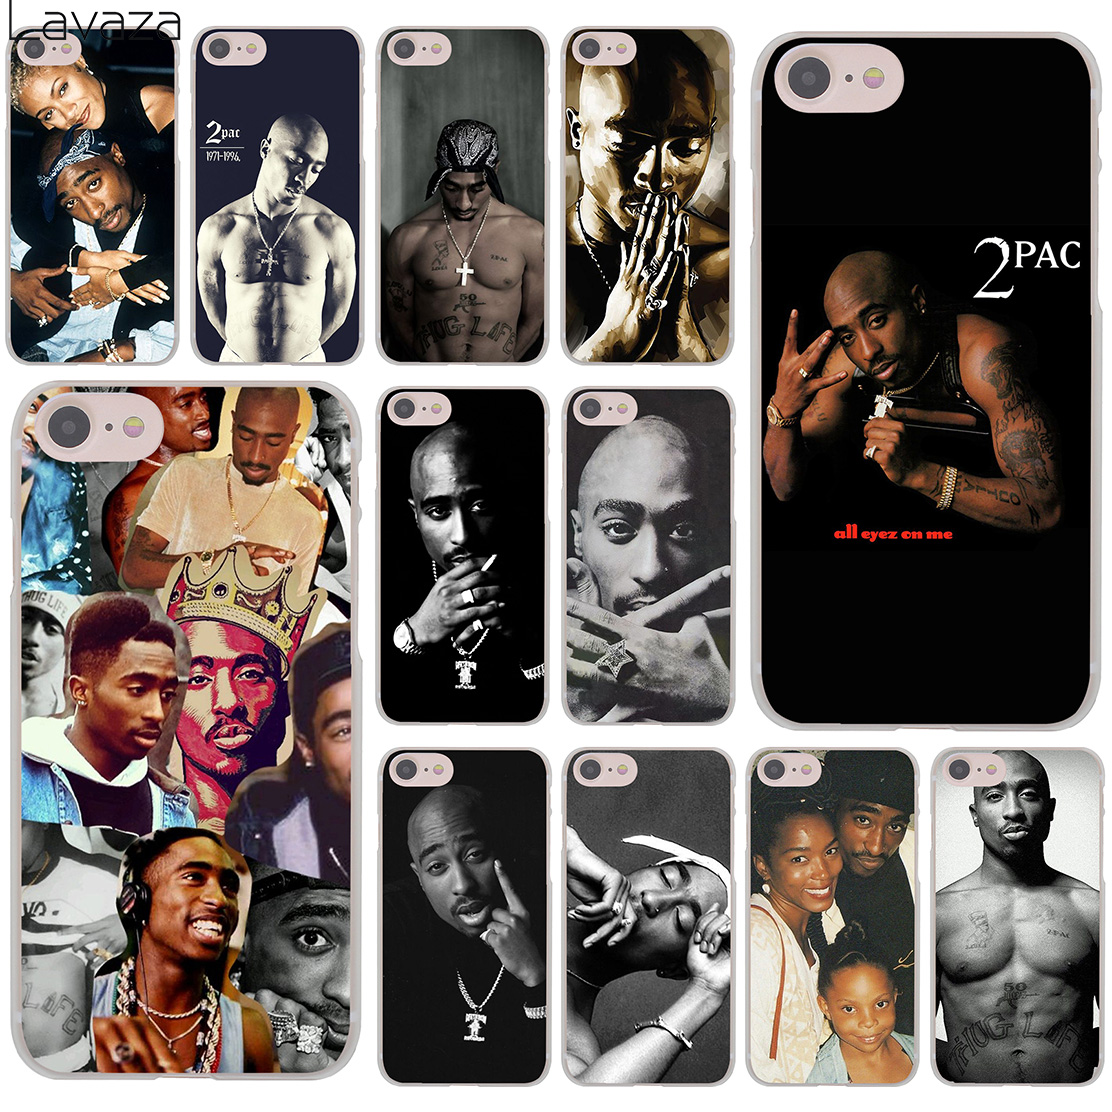 Lavaza 2Pac Tupac Amaru Shakur Makaveli 8Plus Hard Phone Cover Case for iPhone XR X 11 Pro XS Max 8 7 6 6S 5 5S SE 4S 4 10